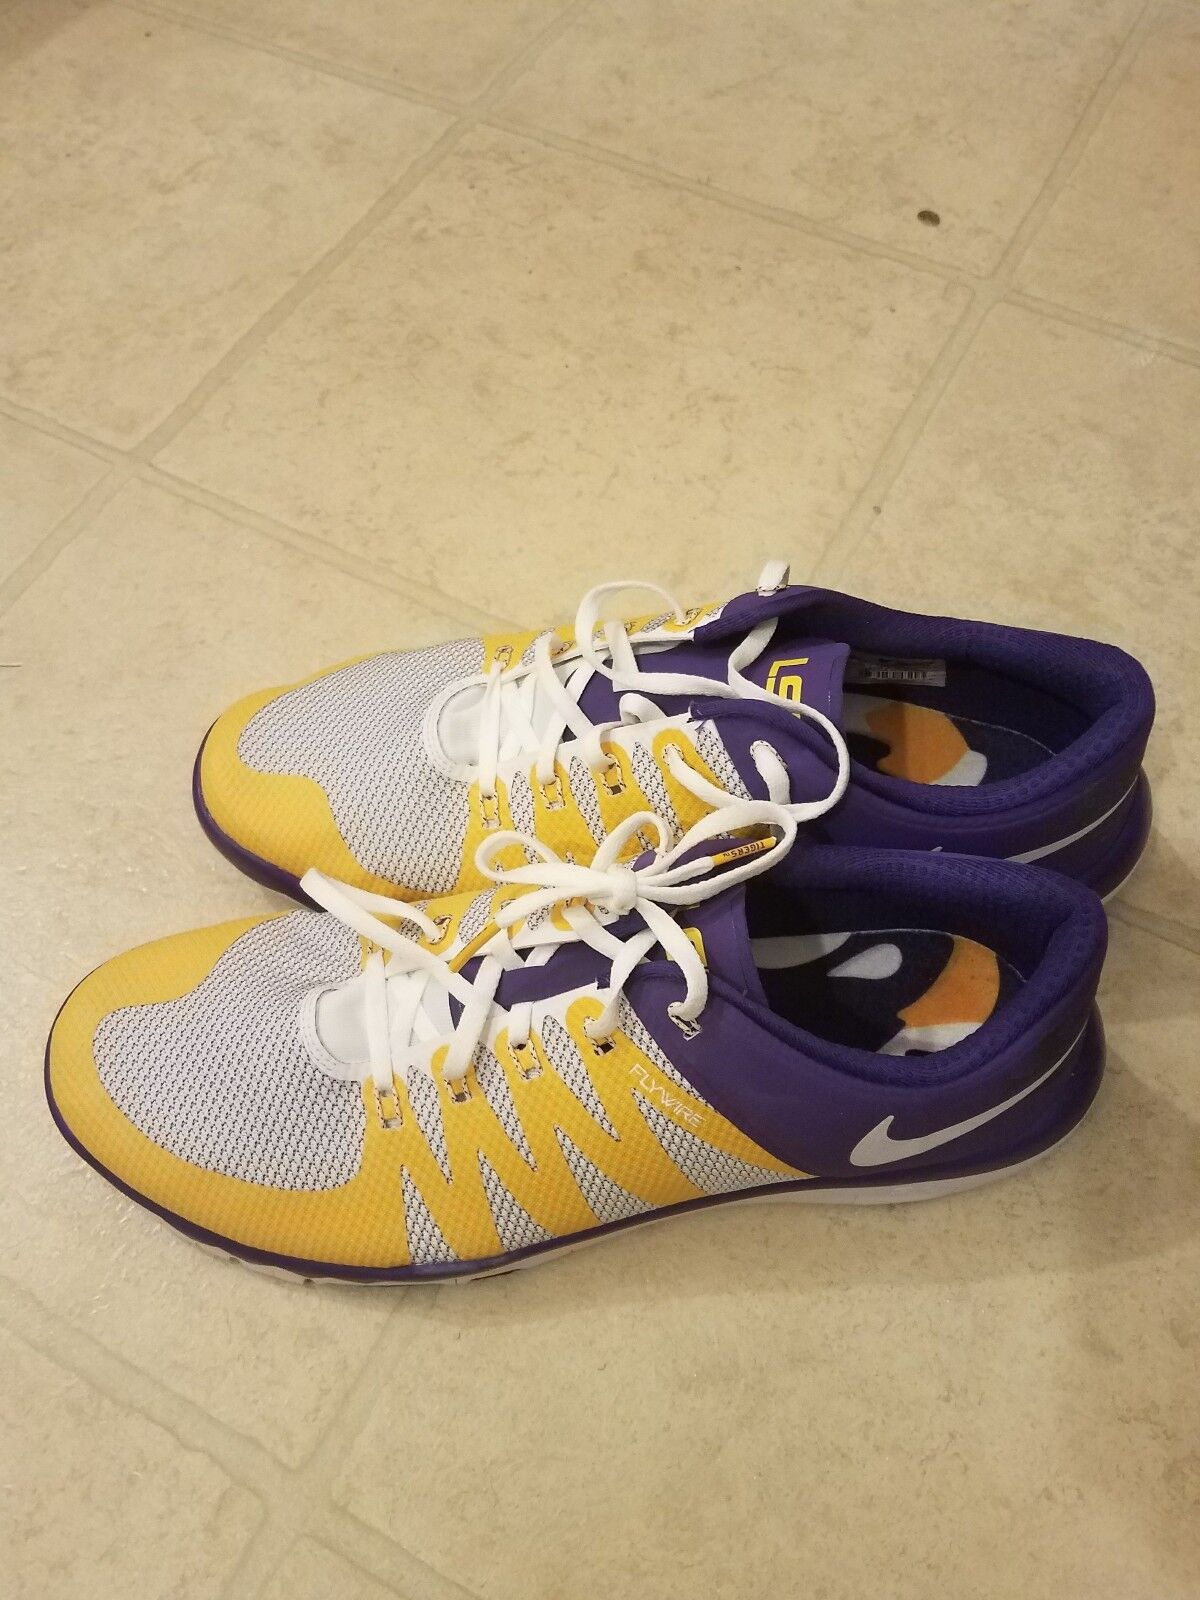 LSU Tigers Nike Free Trainer 5.0 V6 AMP Training Shoes Purple 723939 500